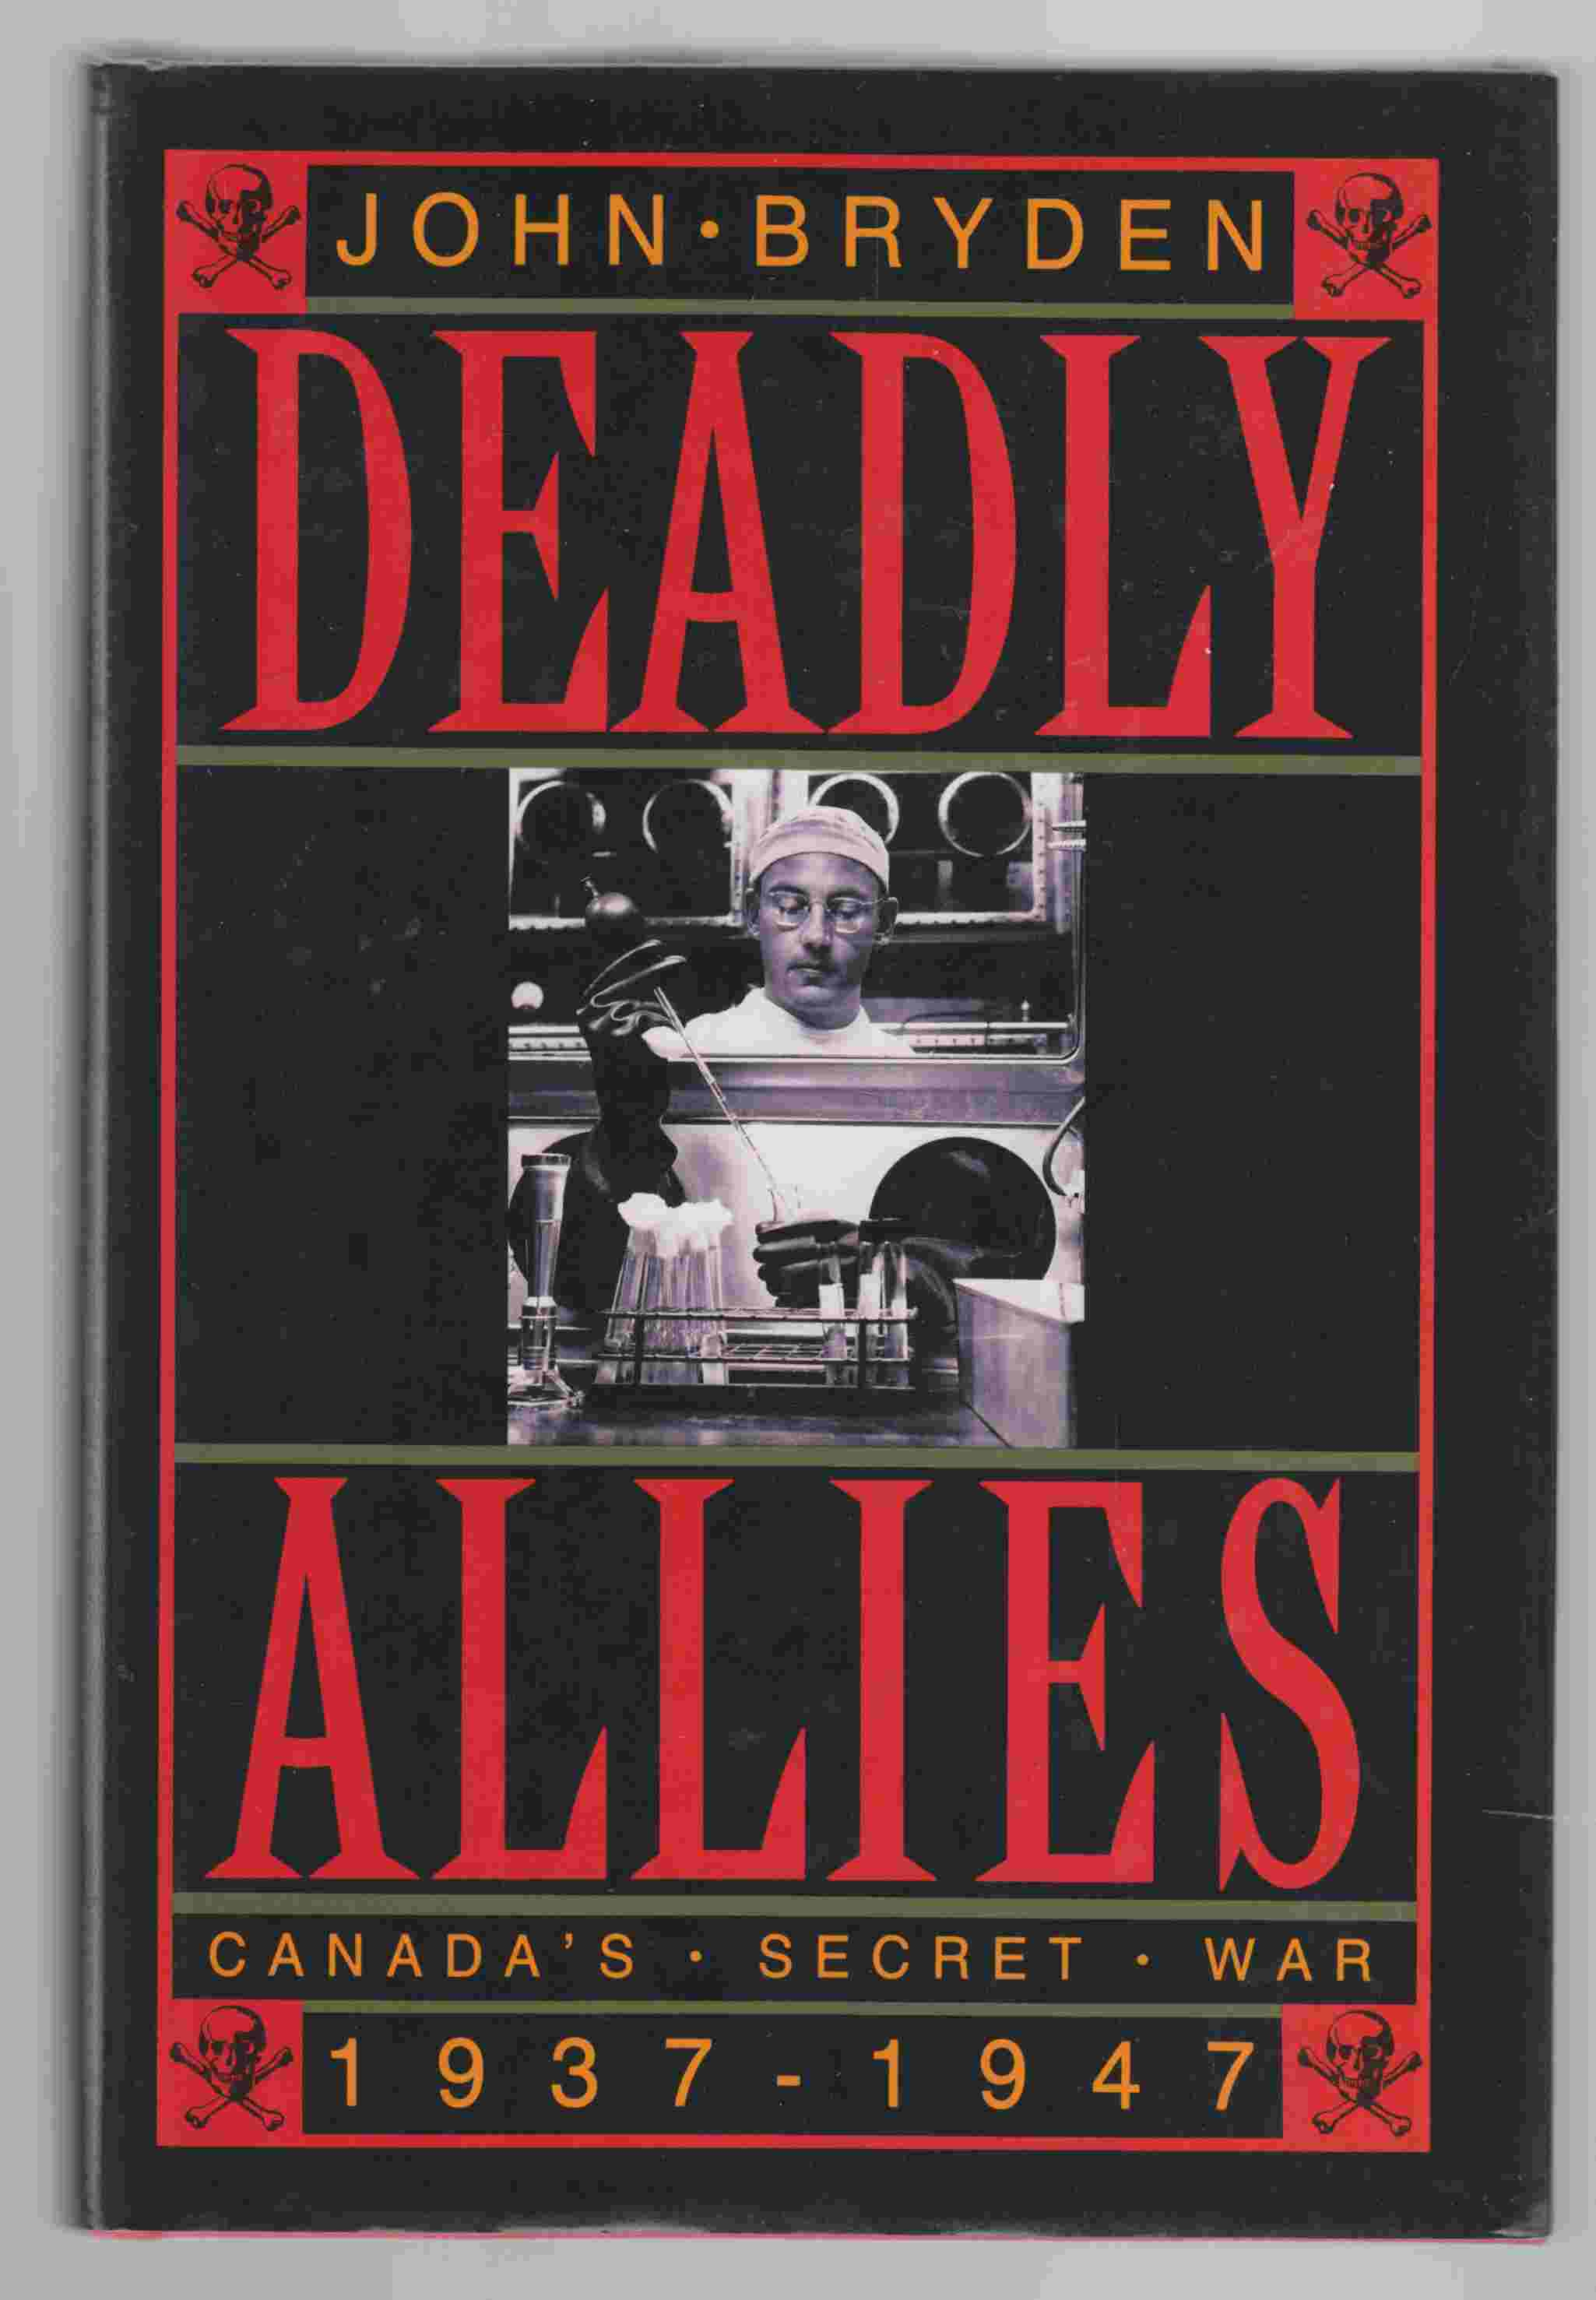 Image for Deadly Allies Canada's Secret War 1937-1947